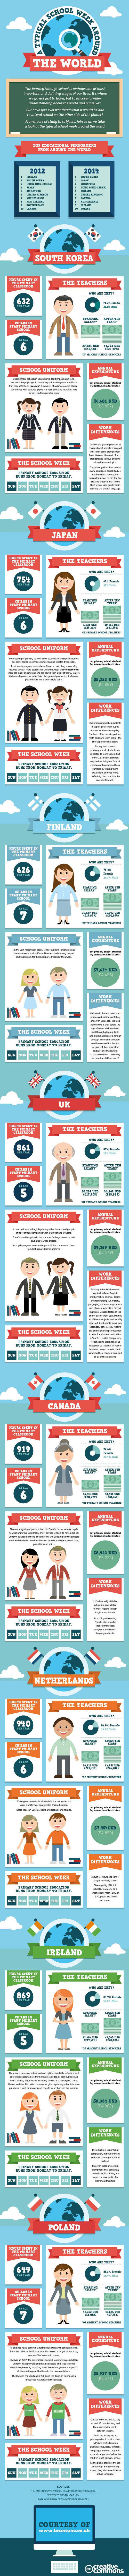 A Typical School Week Around The World #Infographic